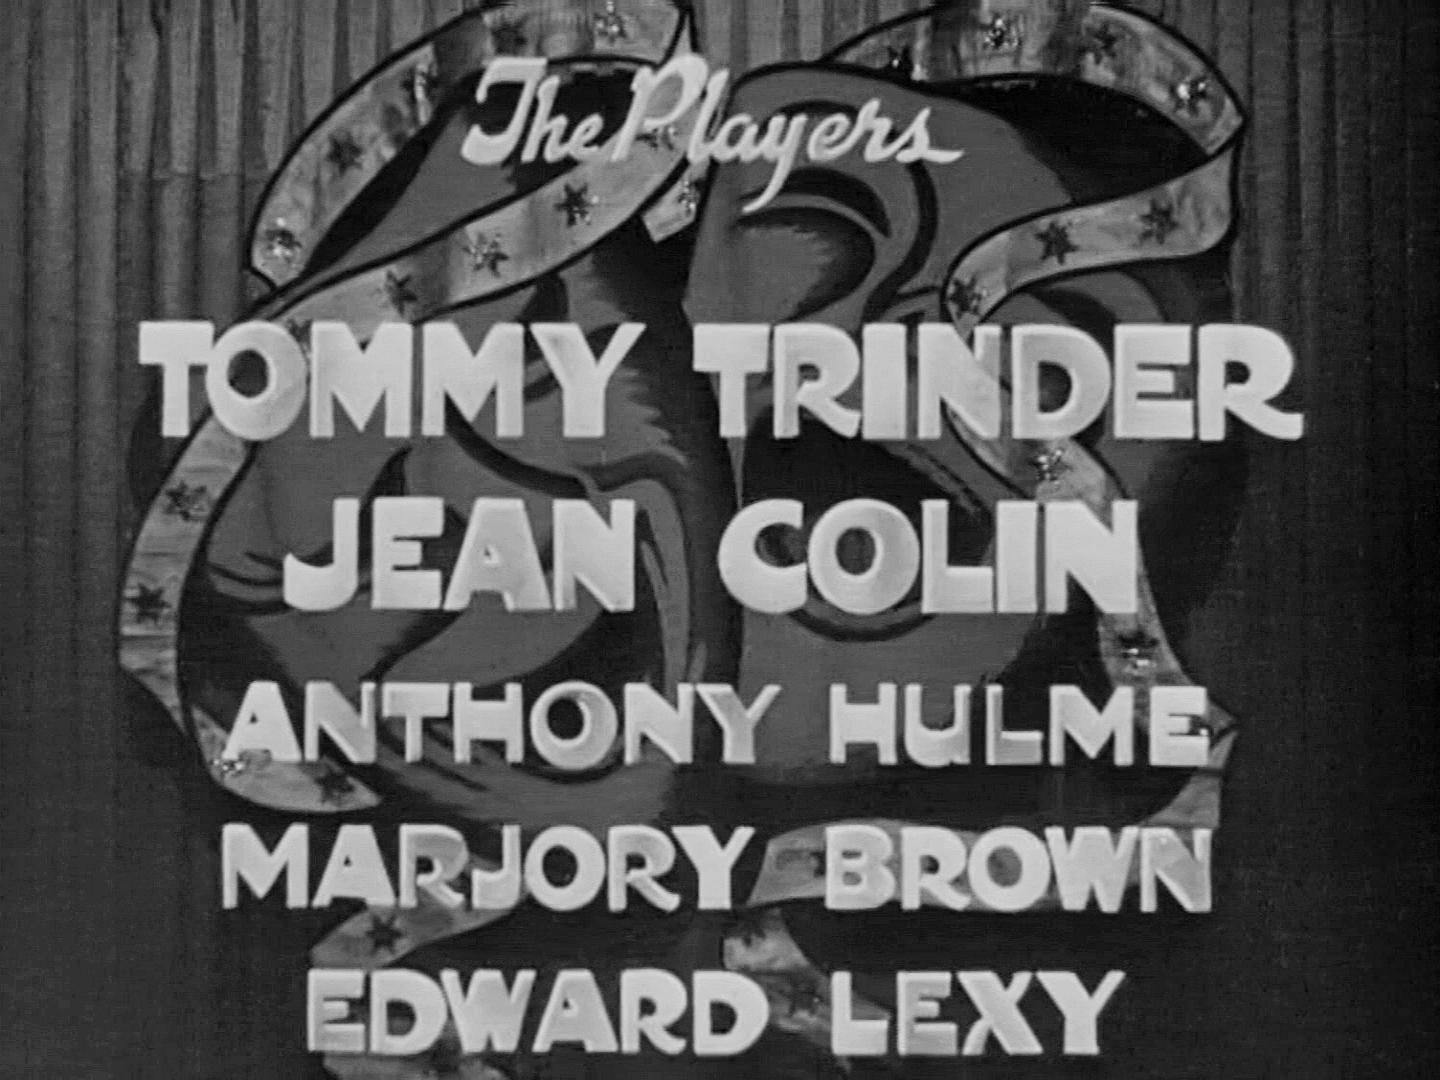 Main title from Laugh It Off (1940) (6). Tommy Trinder, Jean Colin, Anthony Hulme, Marjorie Browne, Edward Lexy